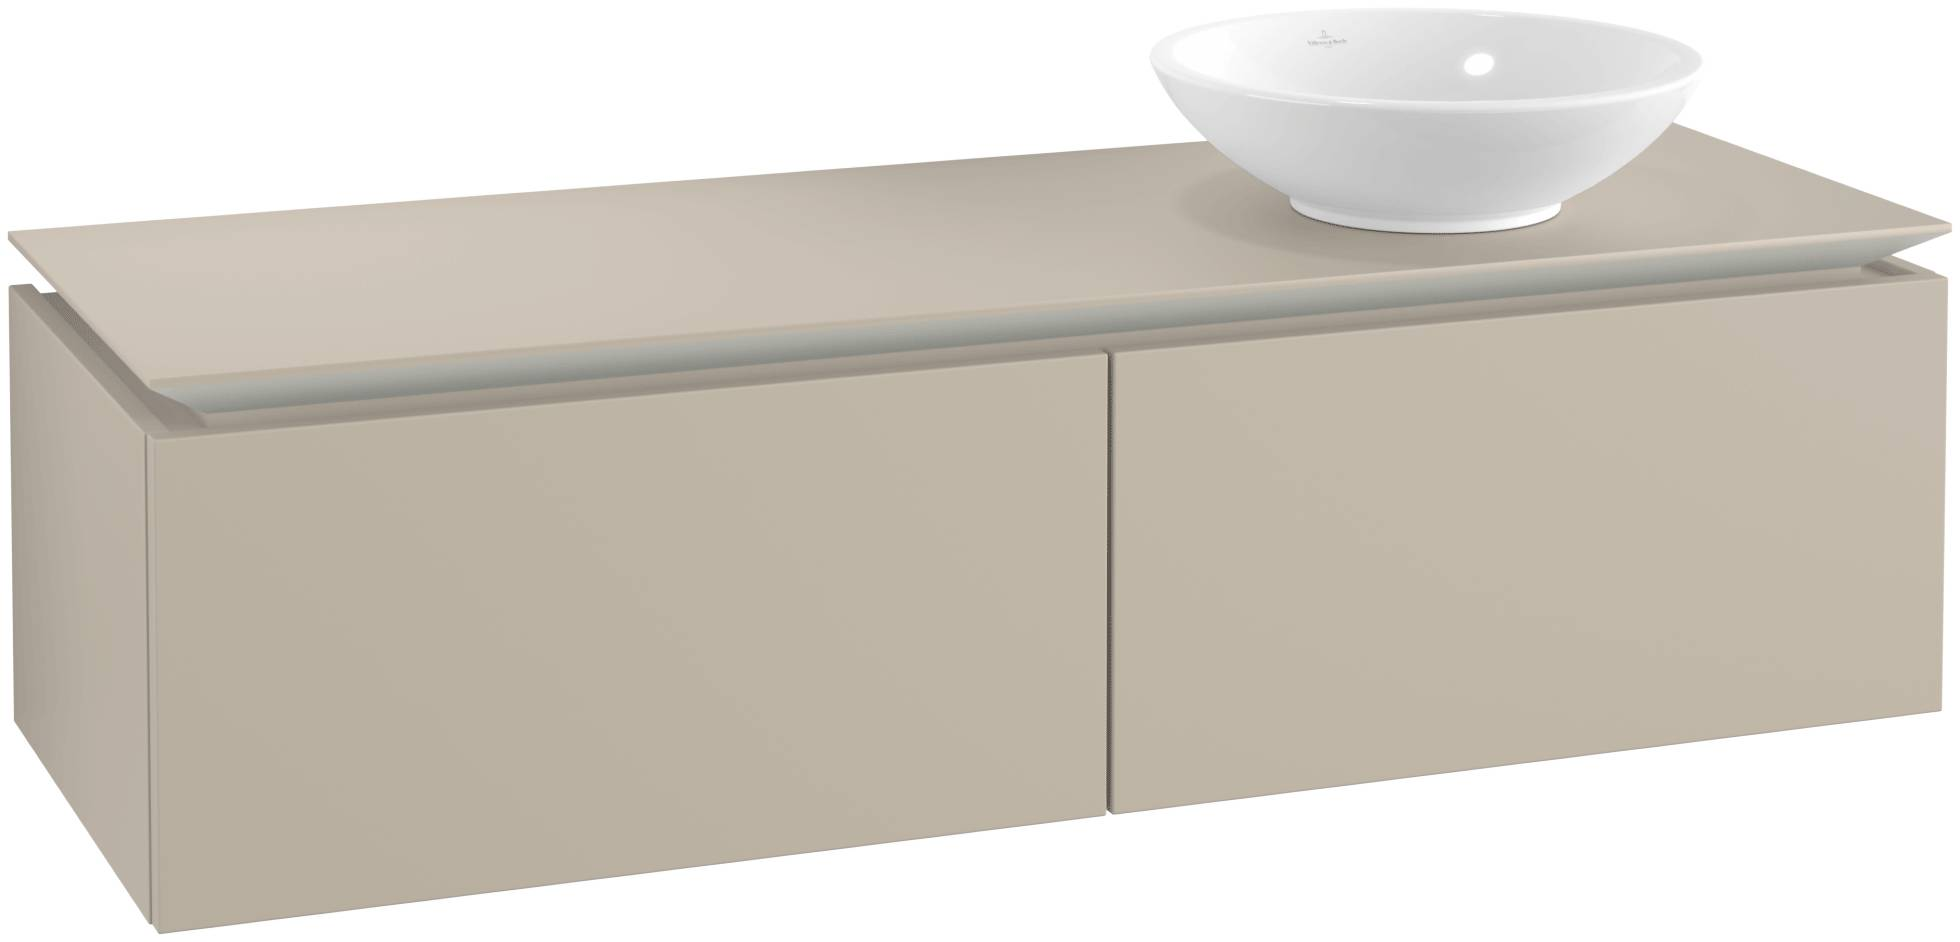 Villeroy & Boch Villeroy & Boch Legato - Meuble sous lavabo with 2 drawers & 1 cut-out right 1400 x 380 x 500mm soft grey